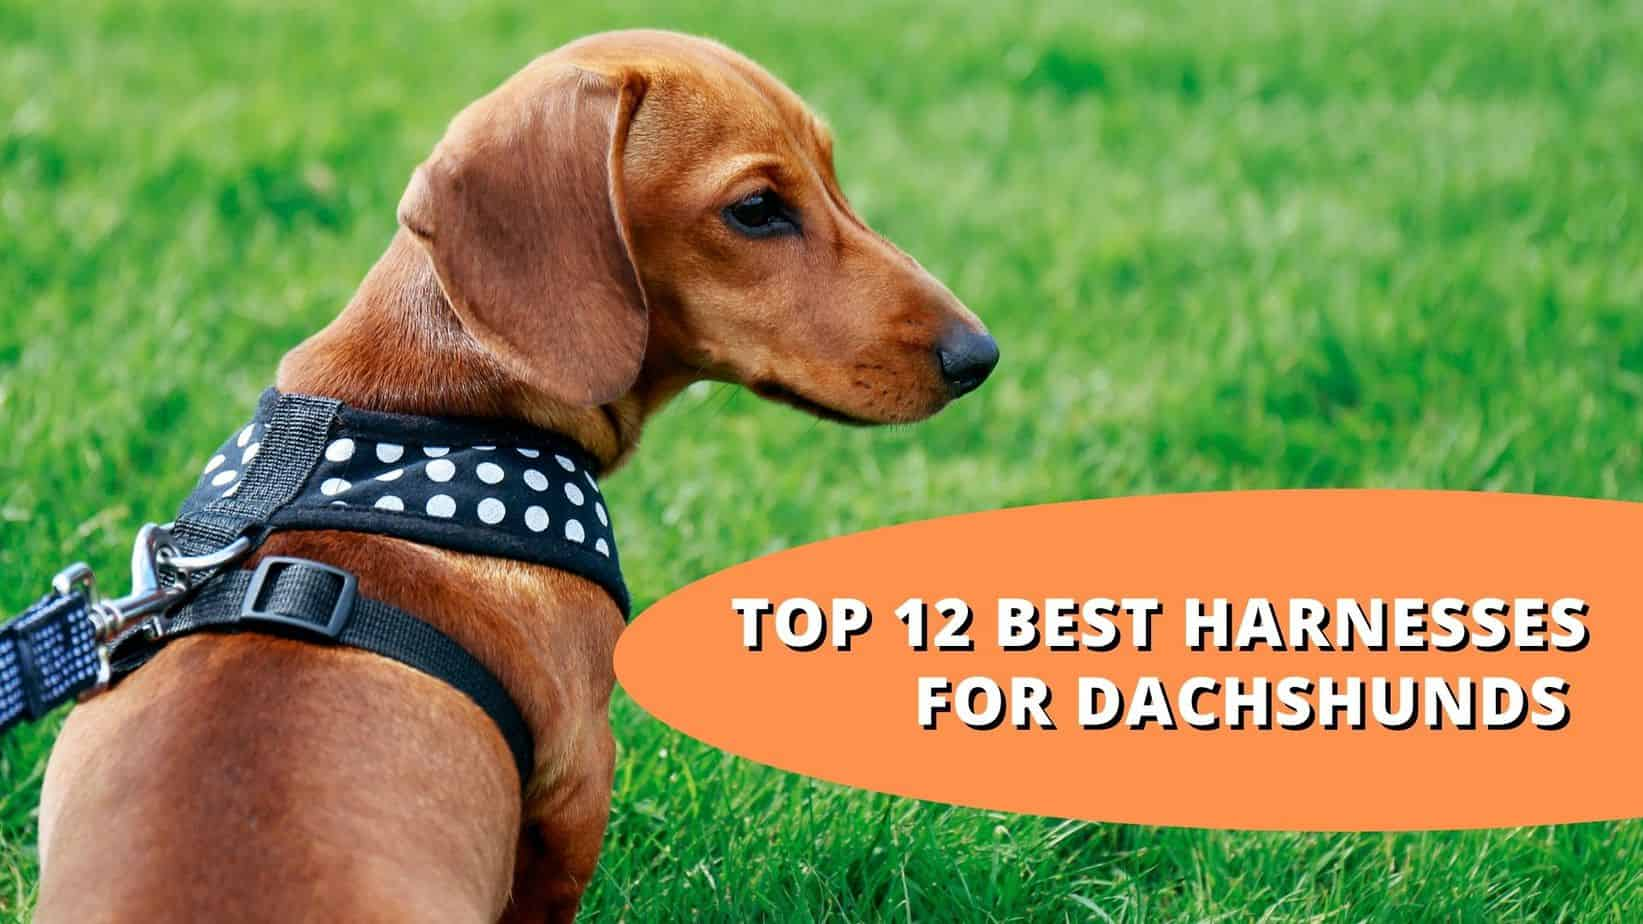 Harnesses for dachshunds